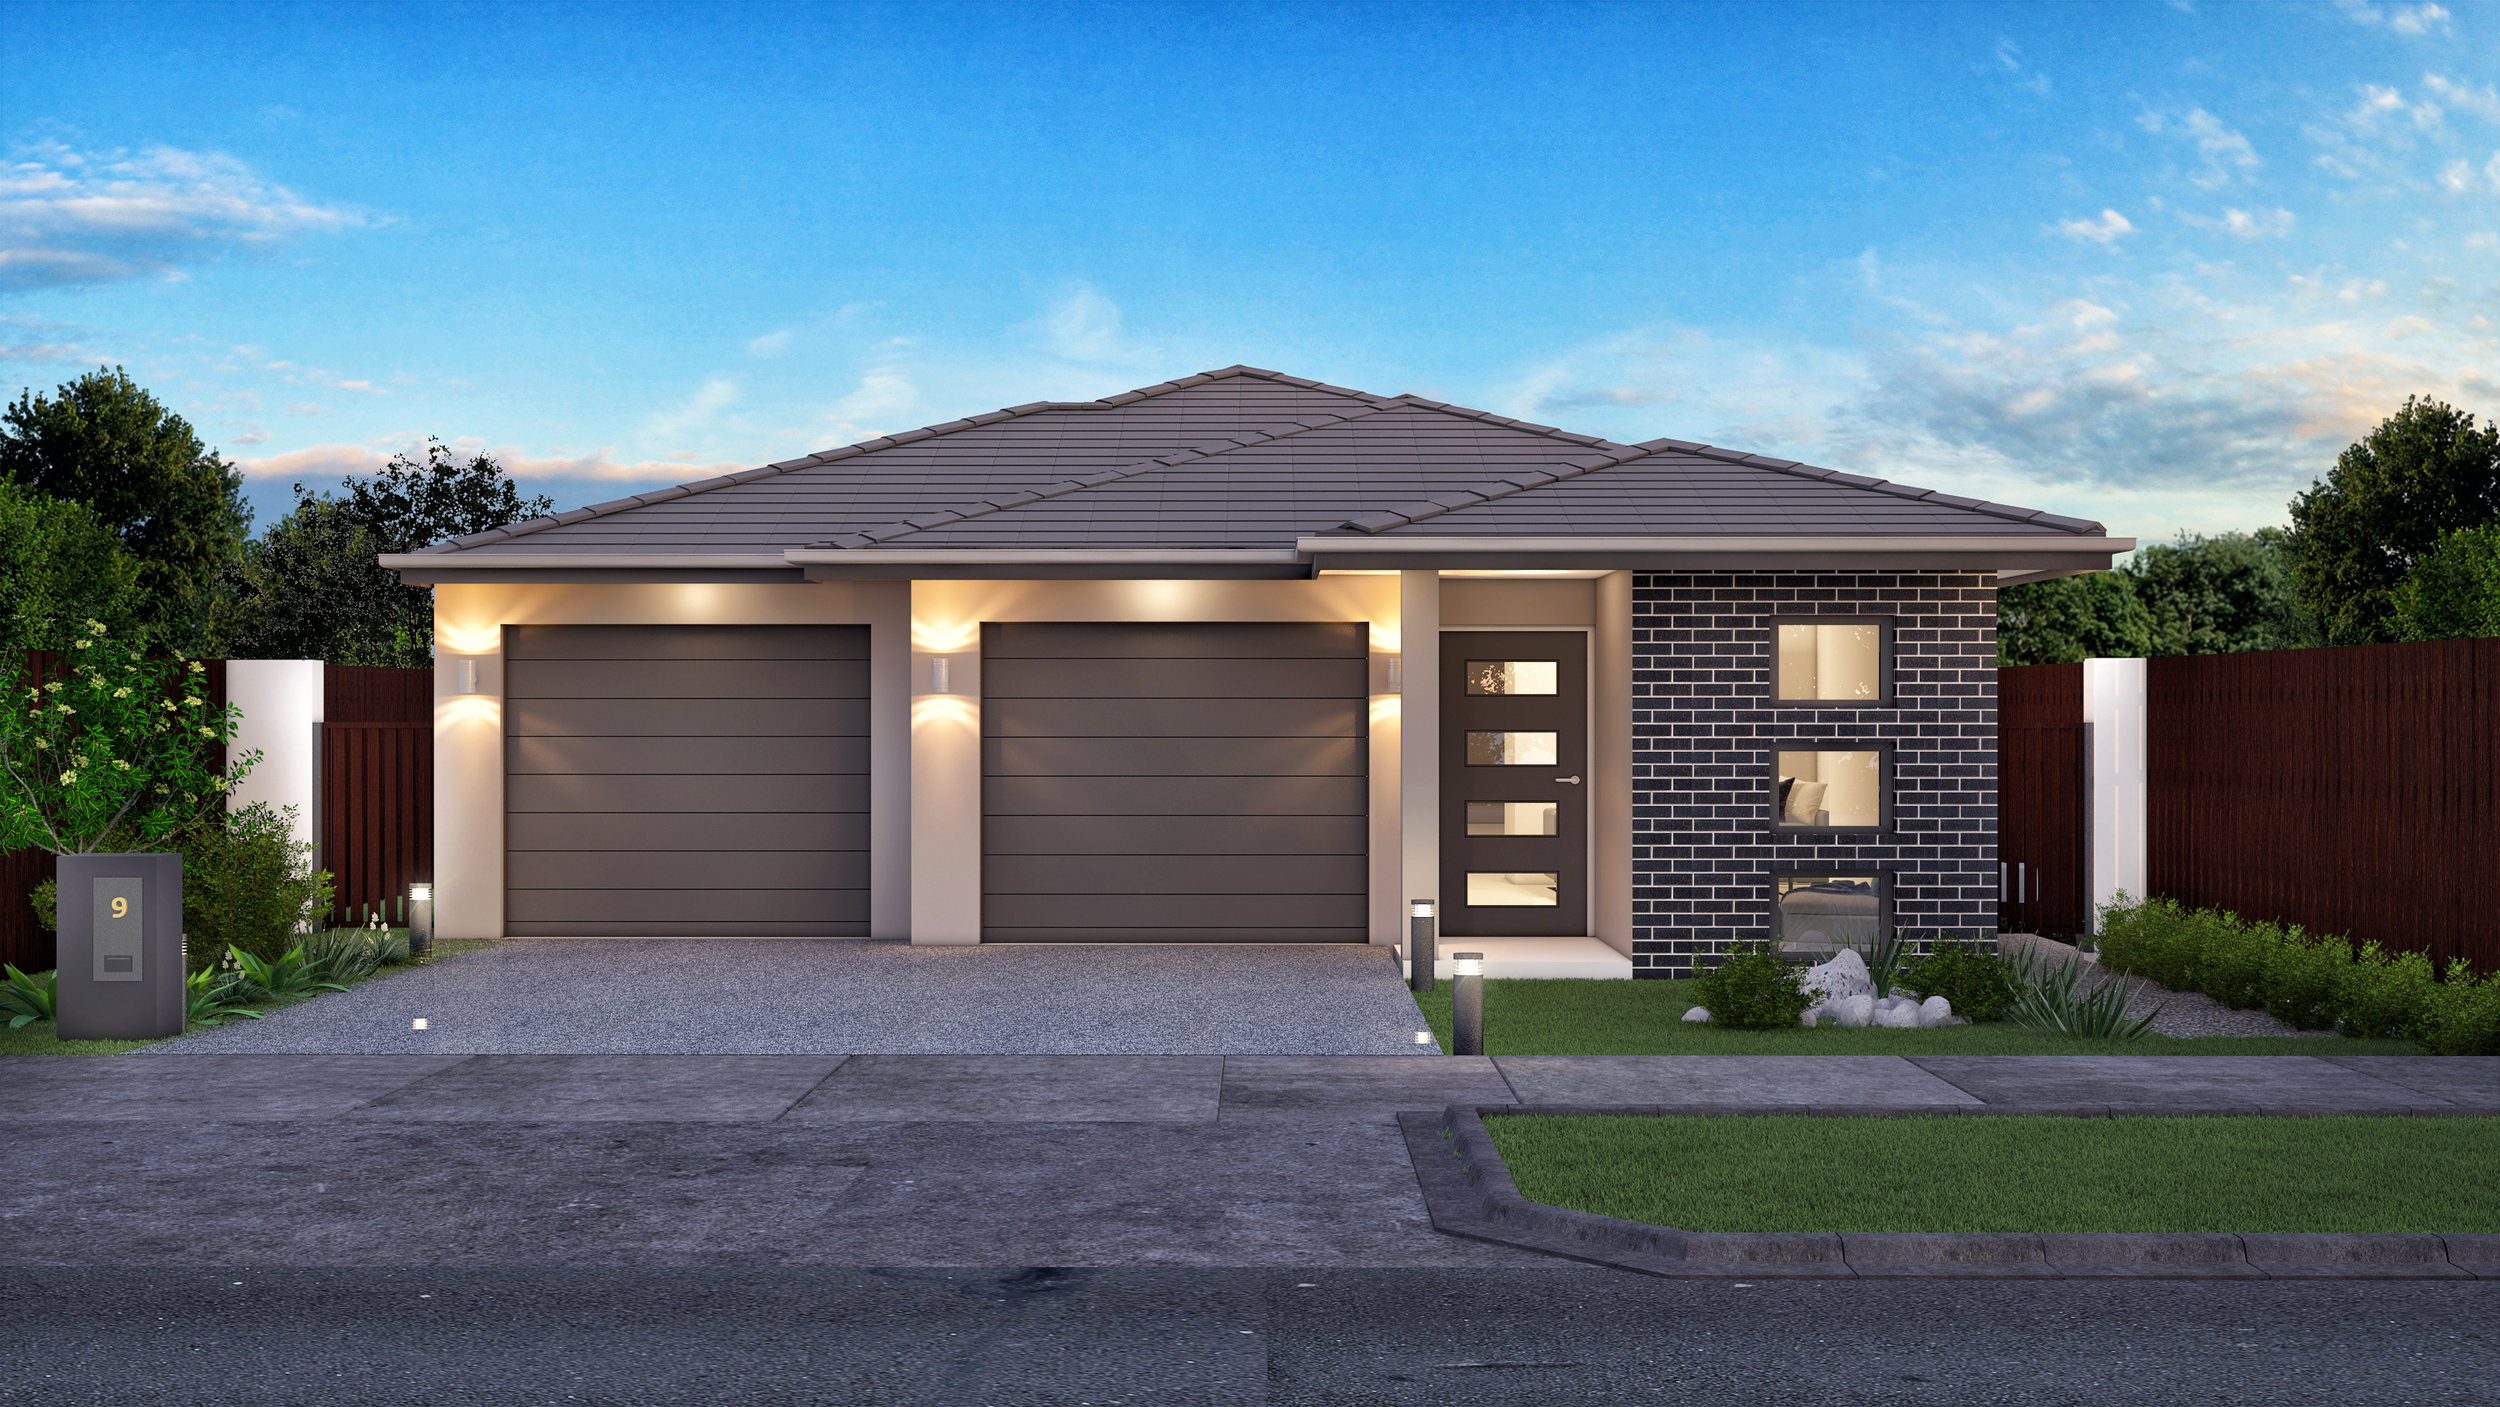 The Citadel - 3 Bed | 2 Bath | 2 Car Garage11.5m Traditional Lots